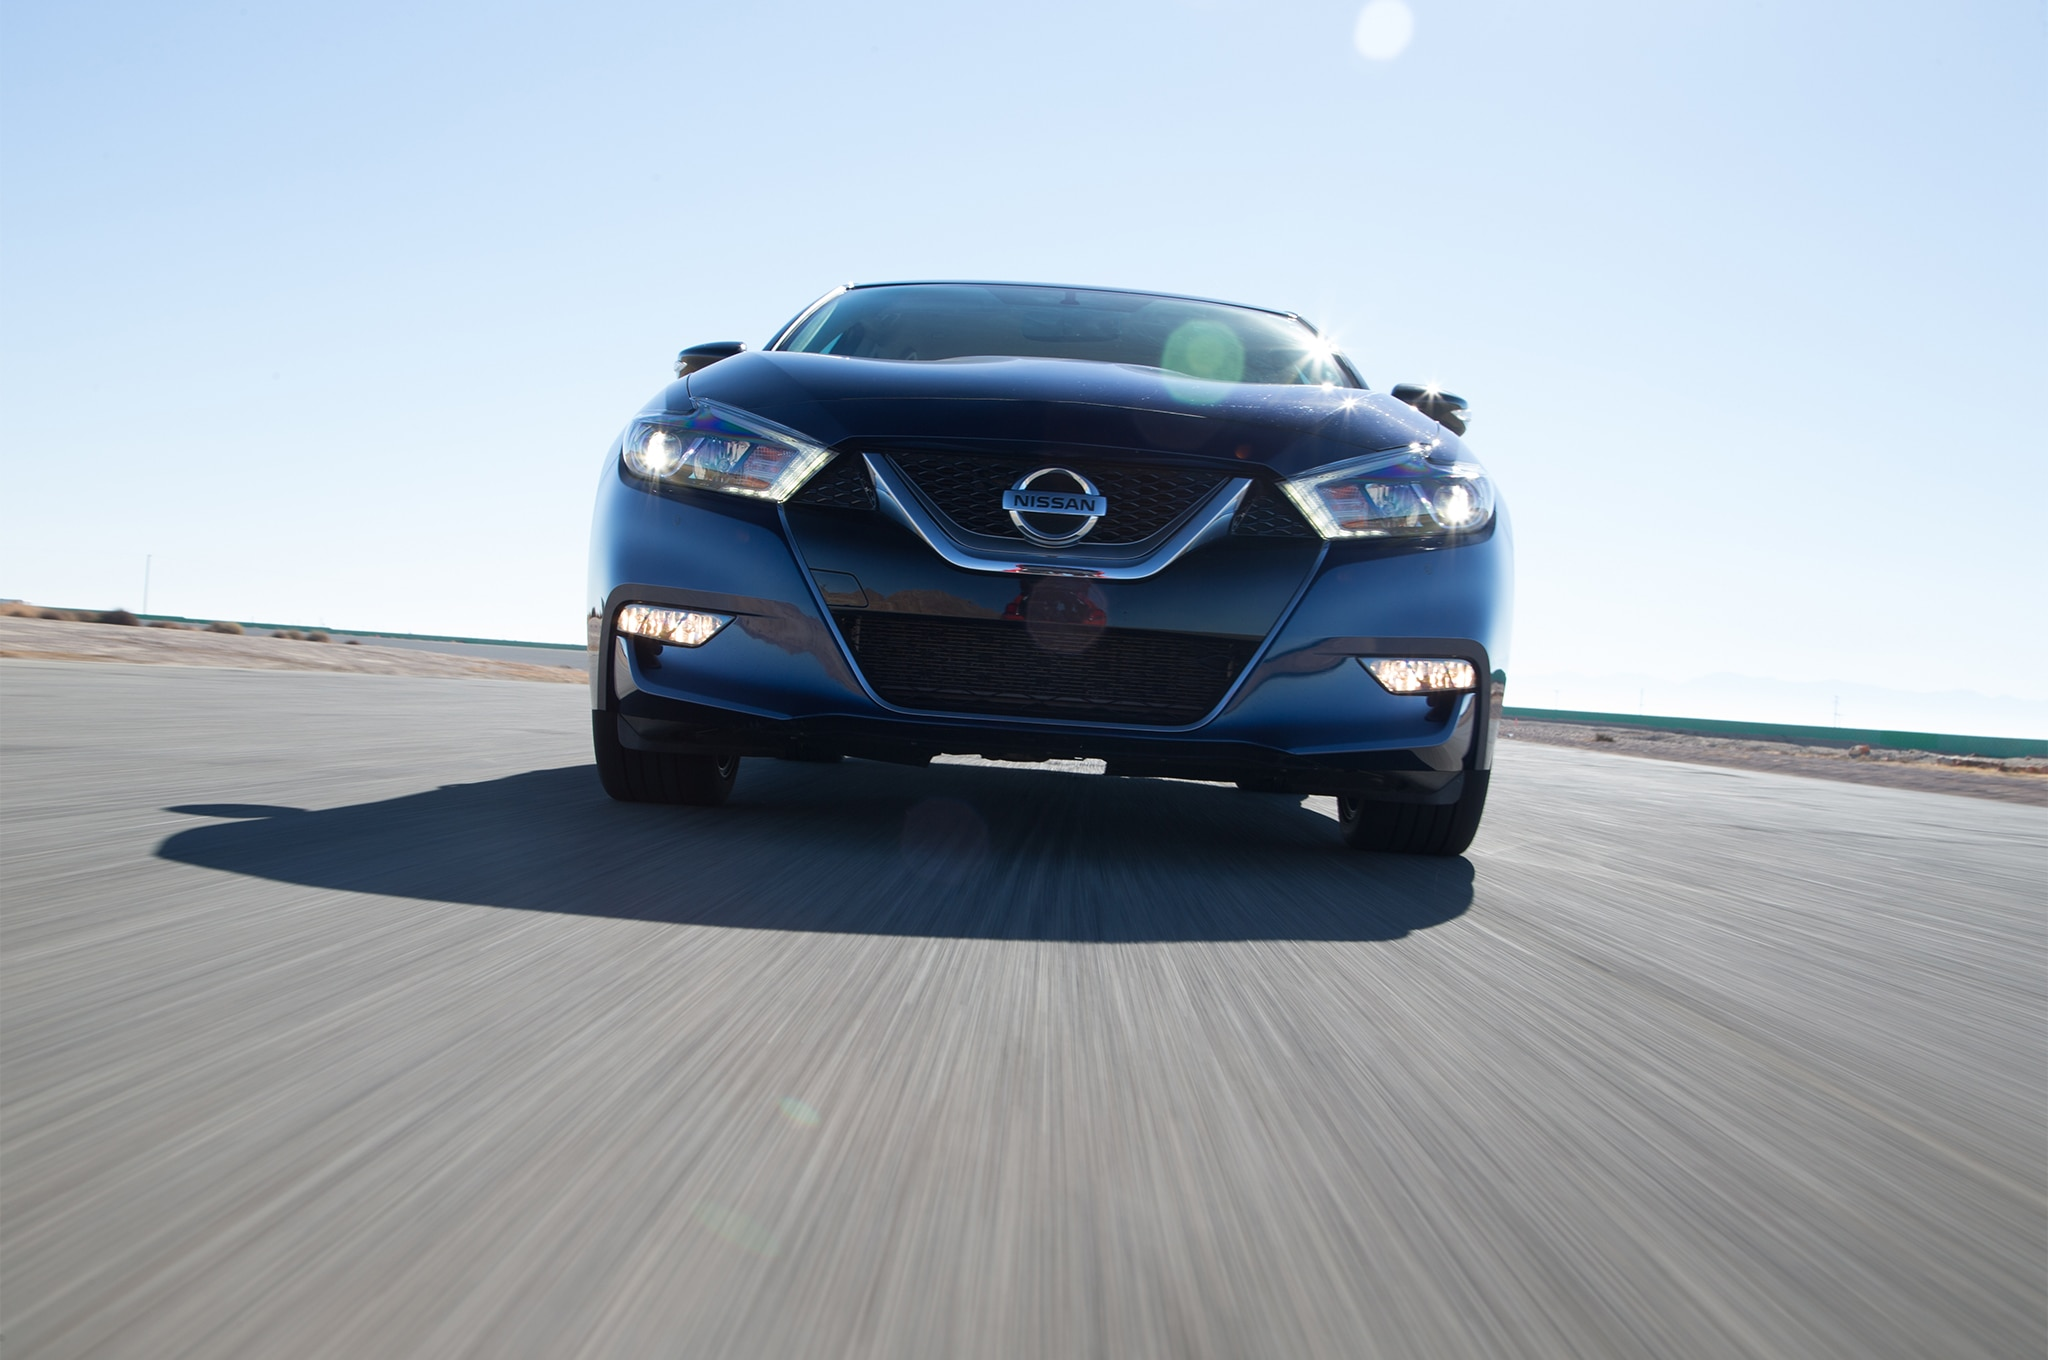 2016 Nissan Maxima SR front view in motion 01 four seasons 2016 nissan maxima sr vs 2016 bmw 340i automobile  at gsmx.co